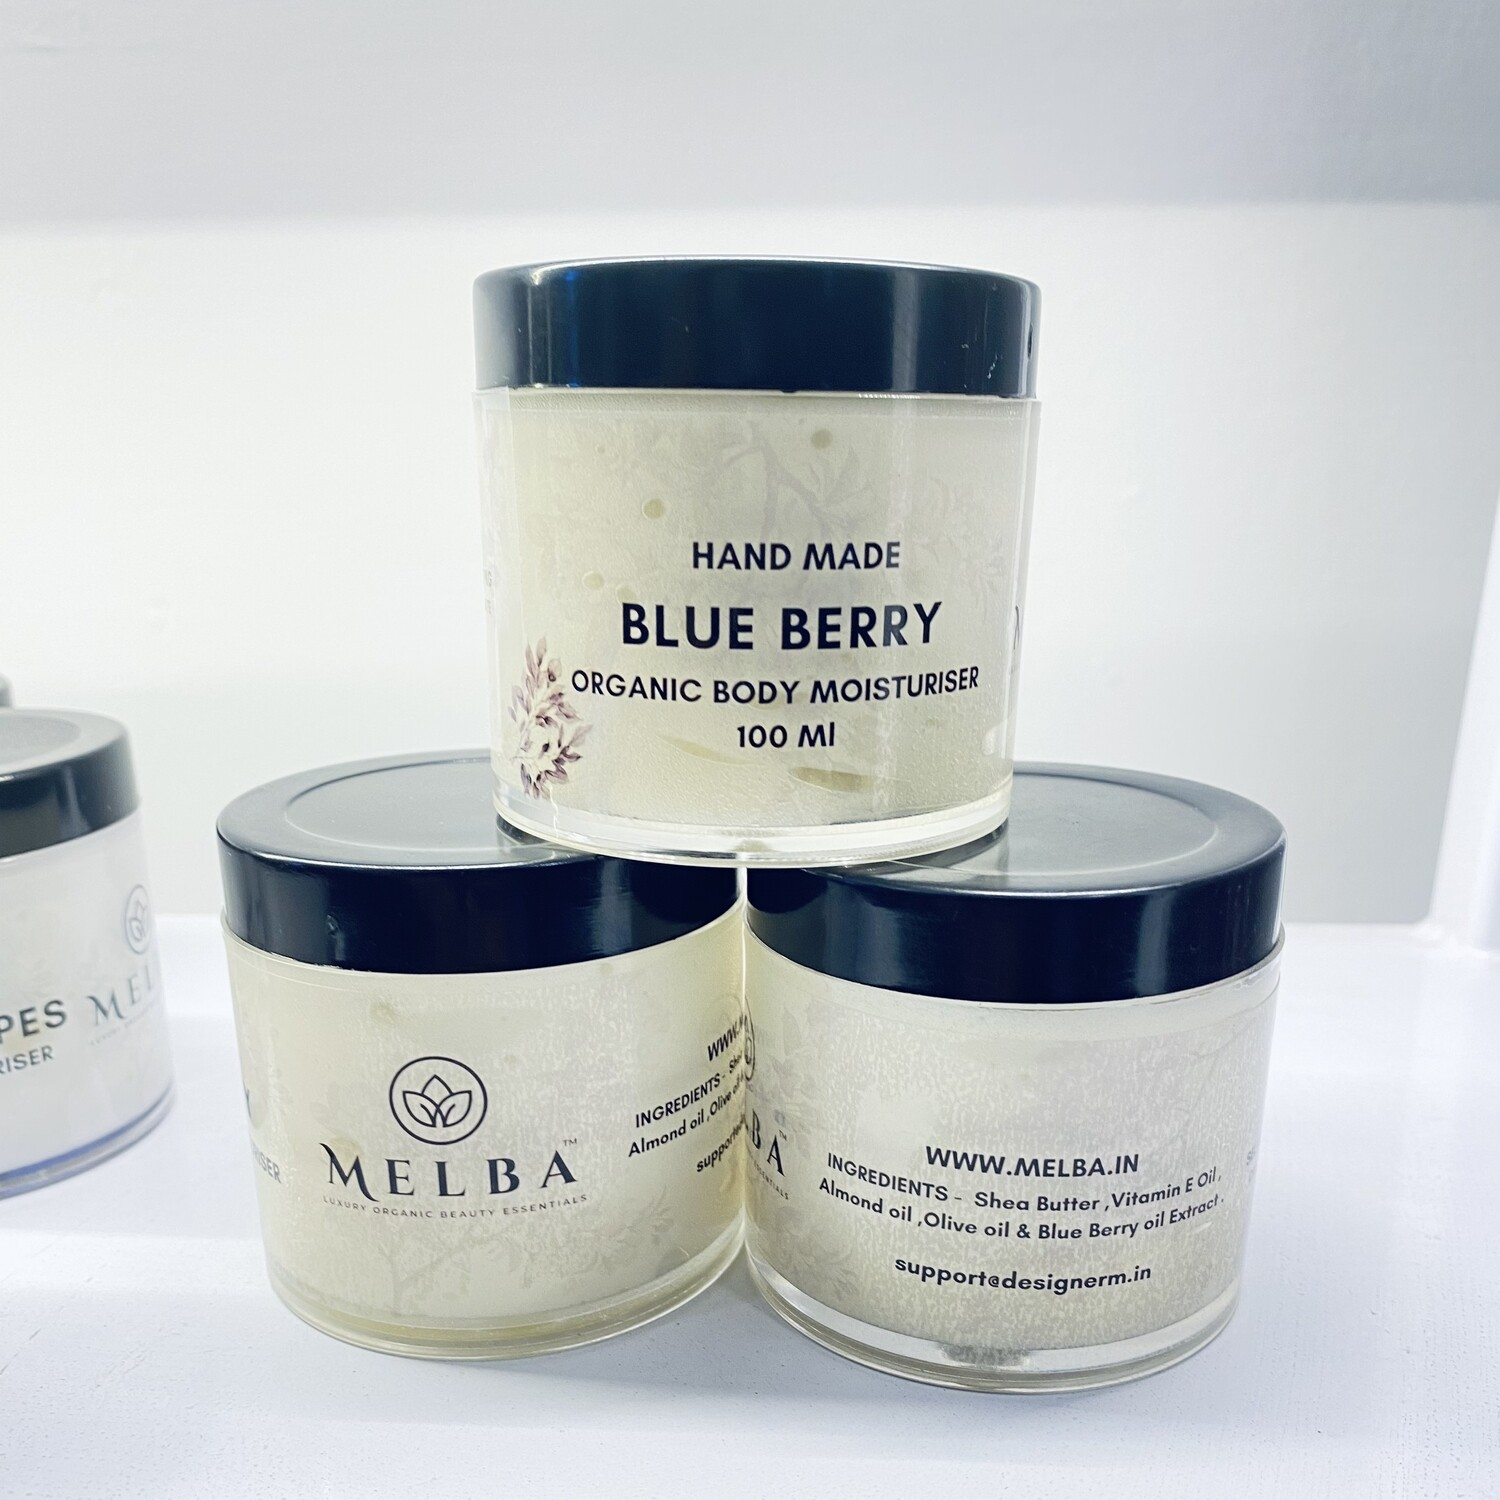 Blue Berry Body Moisturiser